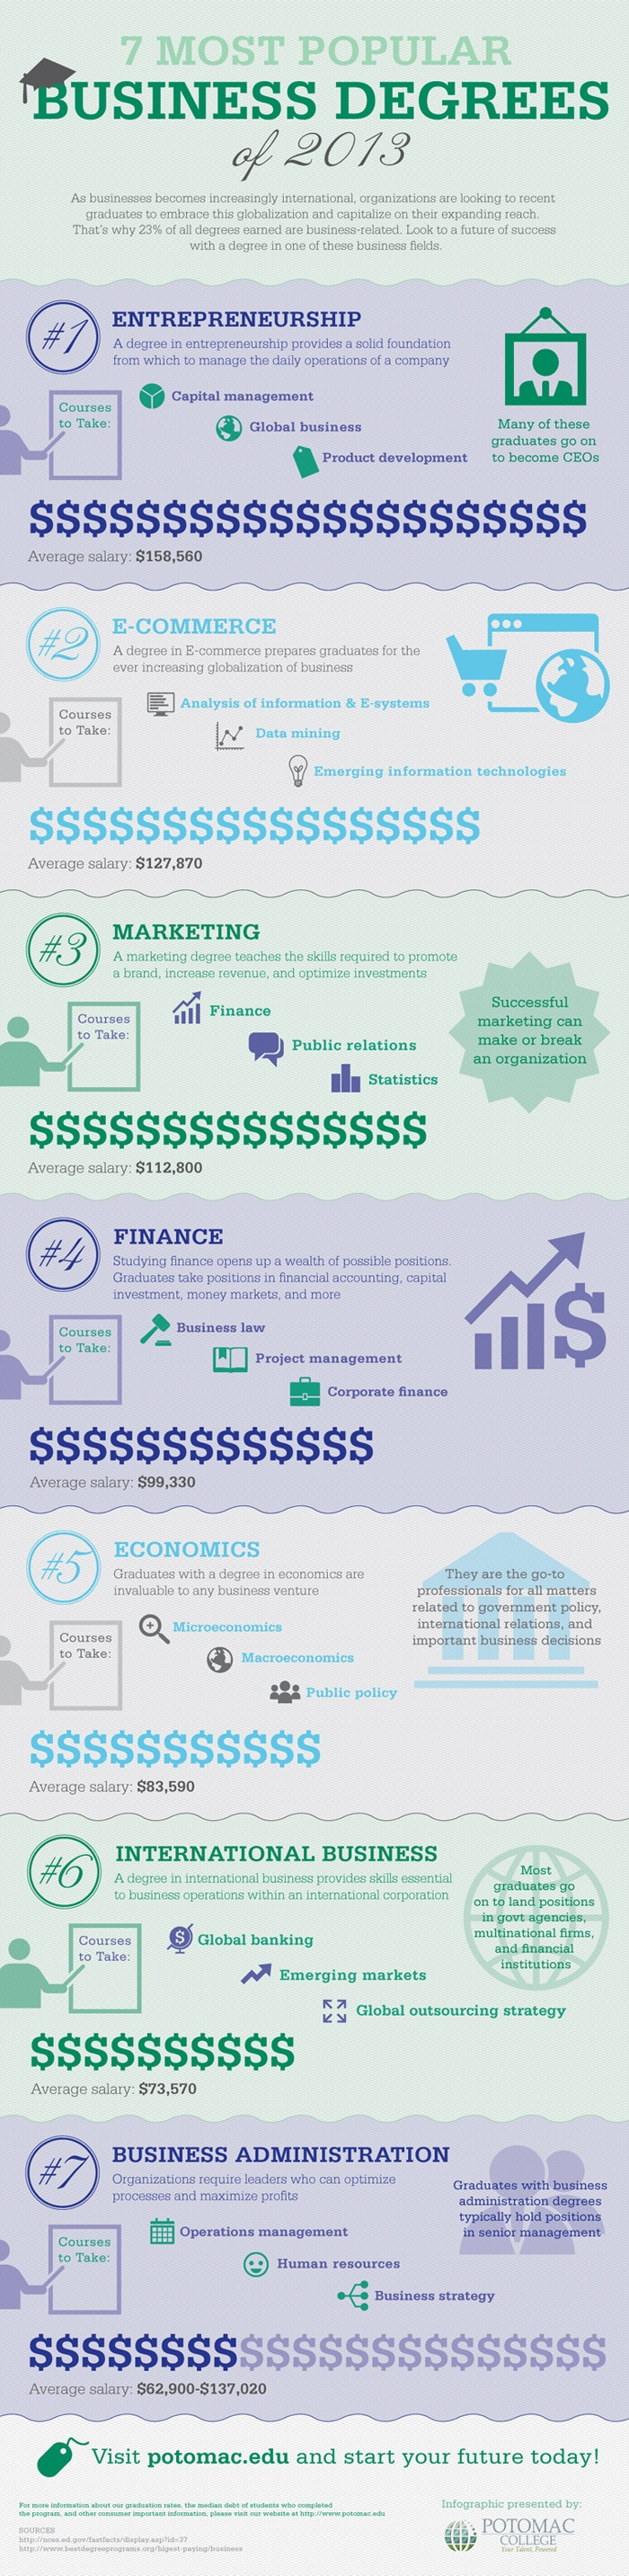 7 Most Popular Business Degrees of 2013